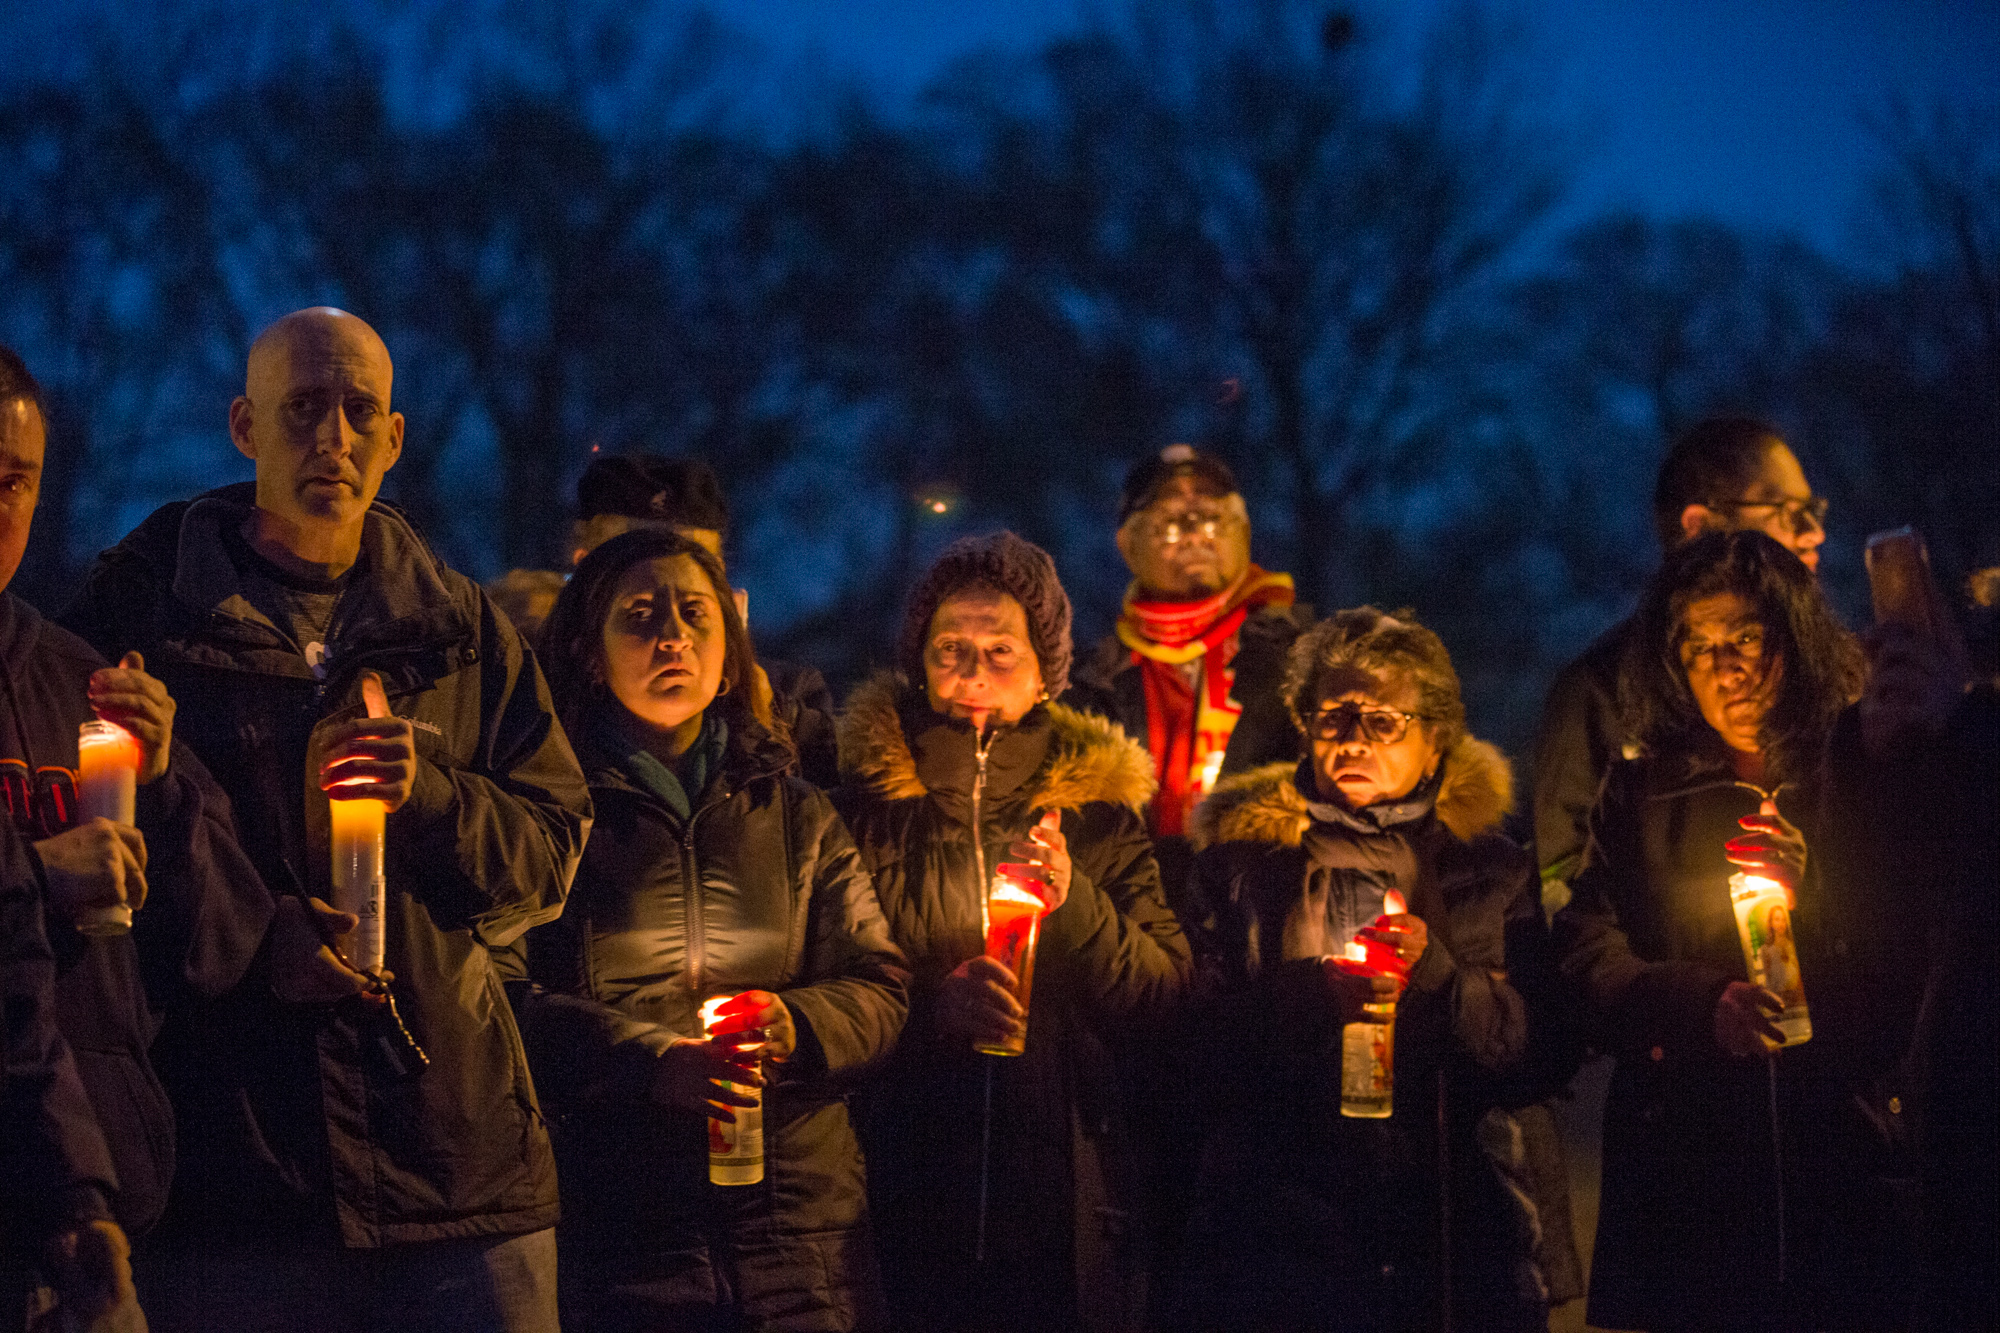 Family, friends, co-workers and community members gather at a candlelight vigil in memory of Danielle Son and Sergio Quiroz on Tuesday, Feb. 27, 2018, at 10th Avenue Park in Rockford. [SCOTT P. YATES/RRSTAR.COM STAFF]